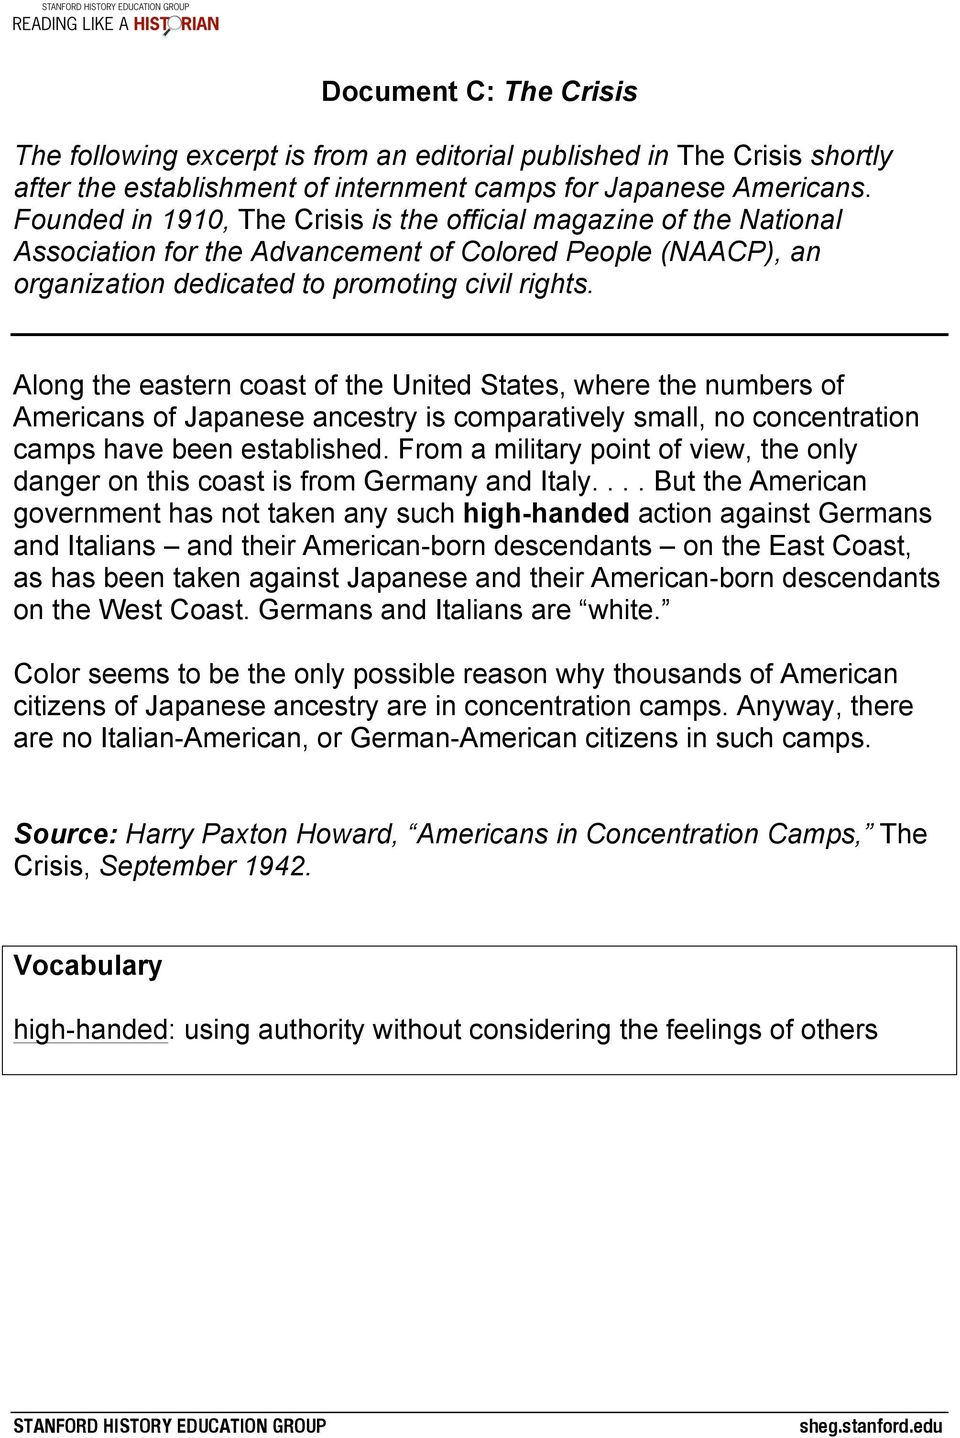 Along the eastern coast of the United States, where the numbers of Americans of Japanese ancestry is comparatively small, no concentration camps have been established.